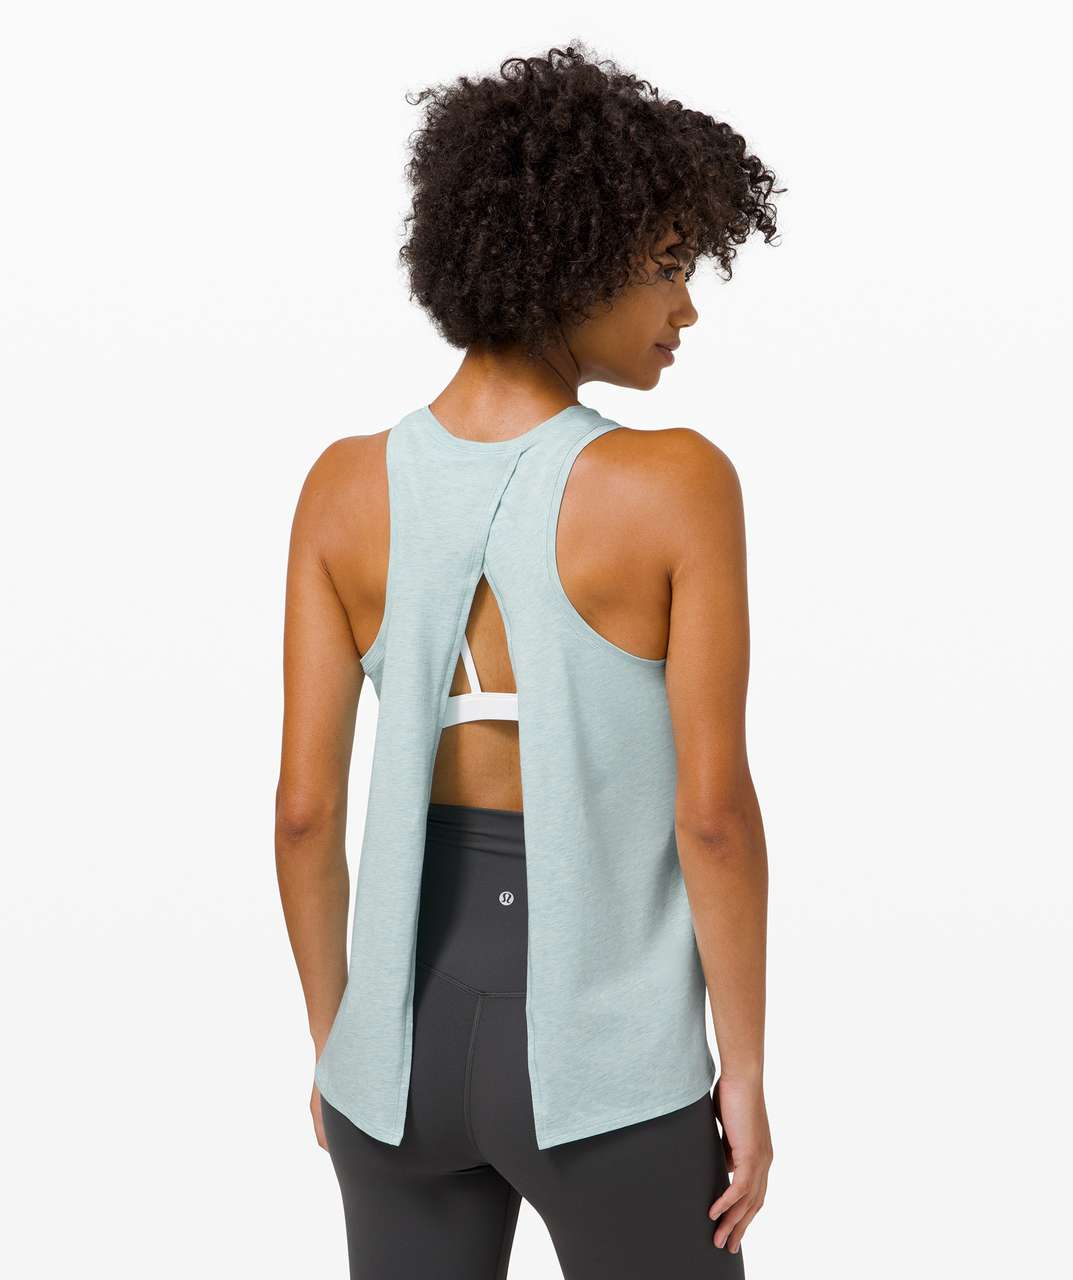 Lululemon All Tied Up Tank - Heathered Hazy Jade